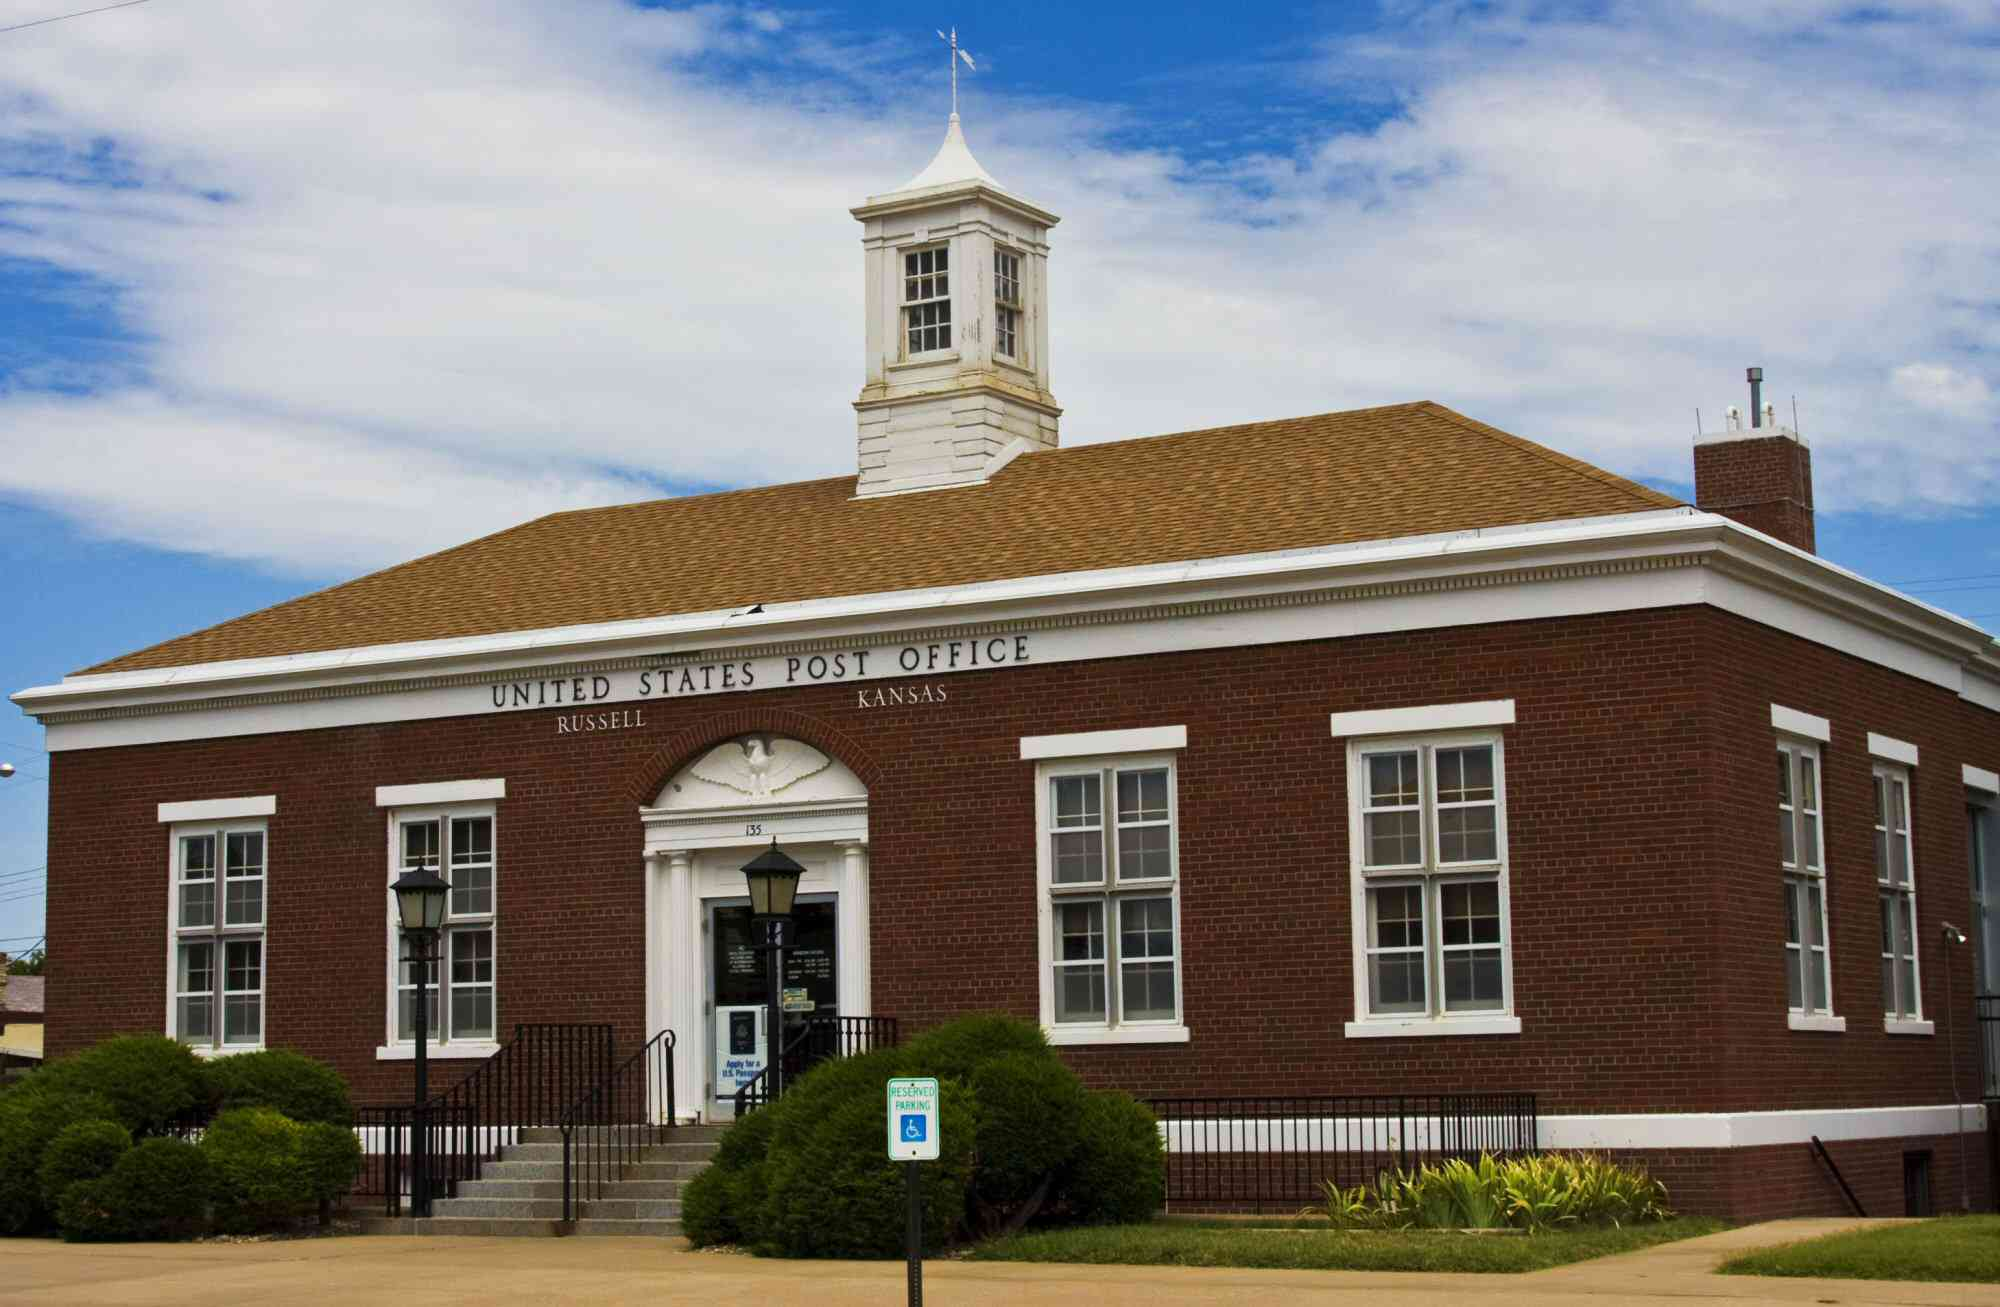 Photo of brick post office, 4-over-4 symetrical windows, weathervane, center cupola